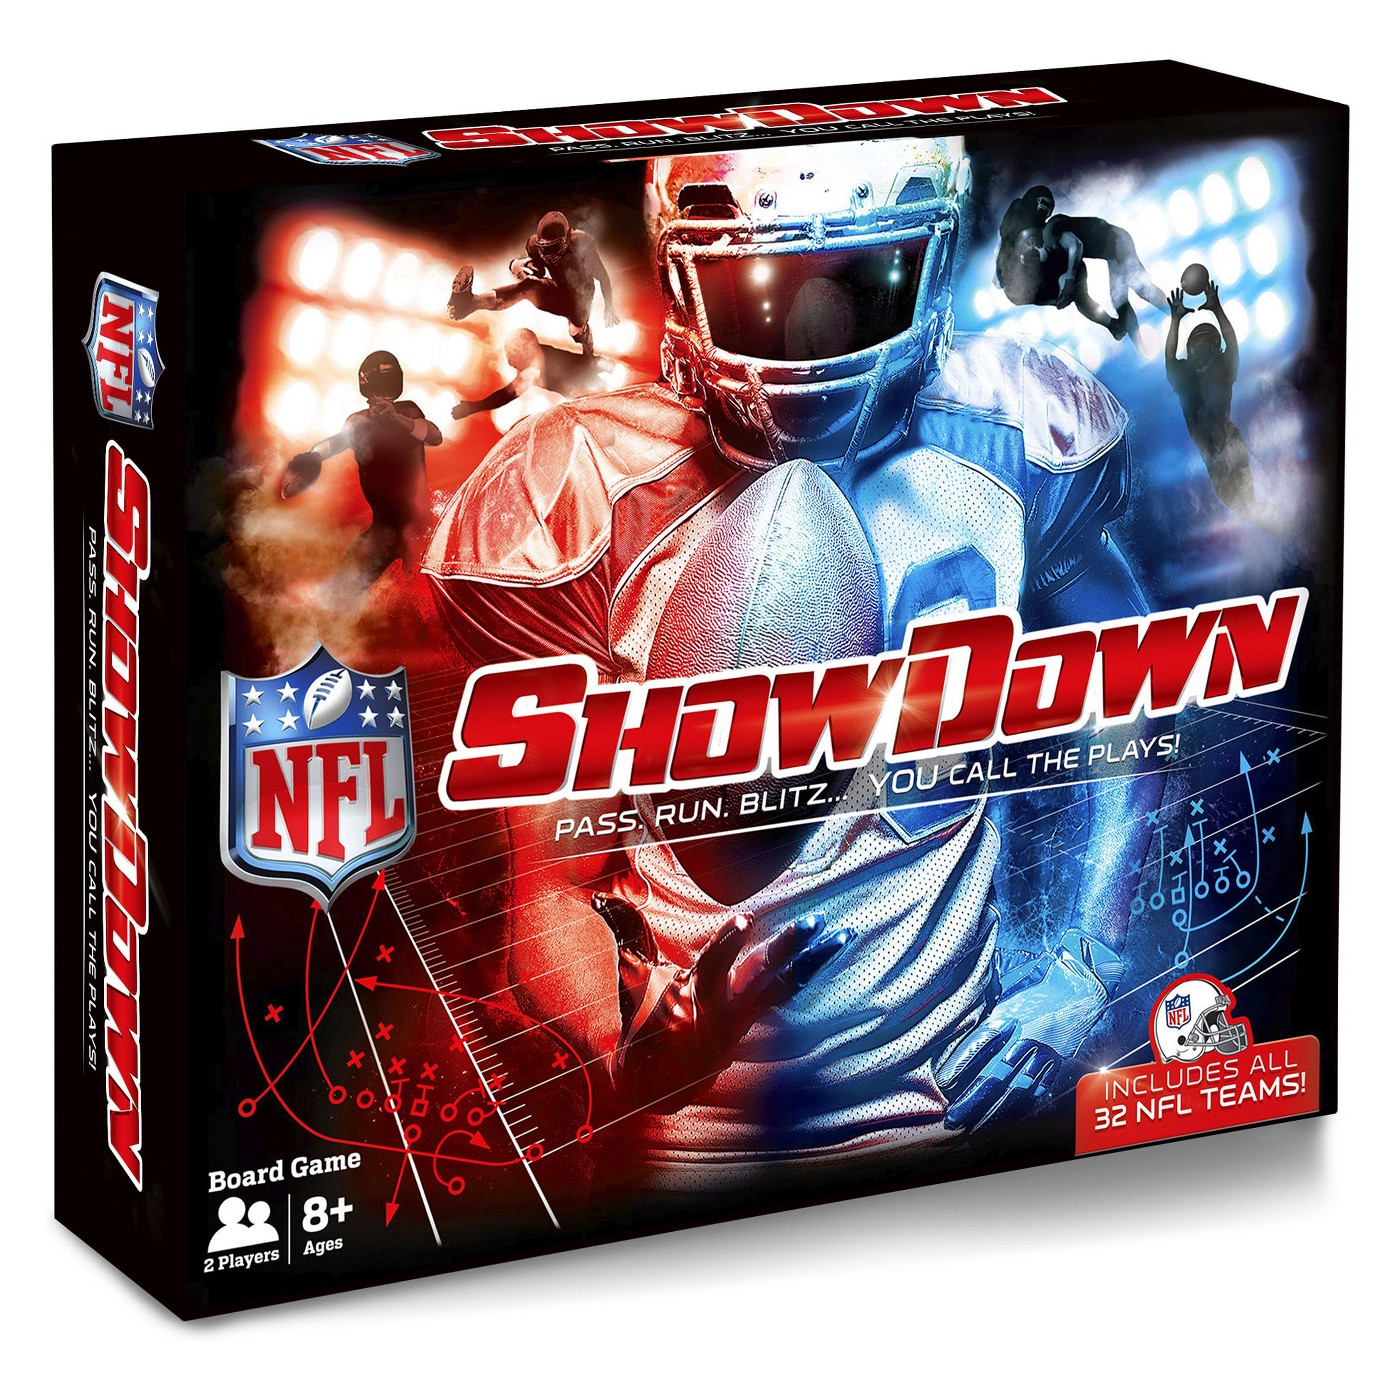 Save 6% on Buffalo Games NFL Showdown Game